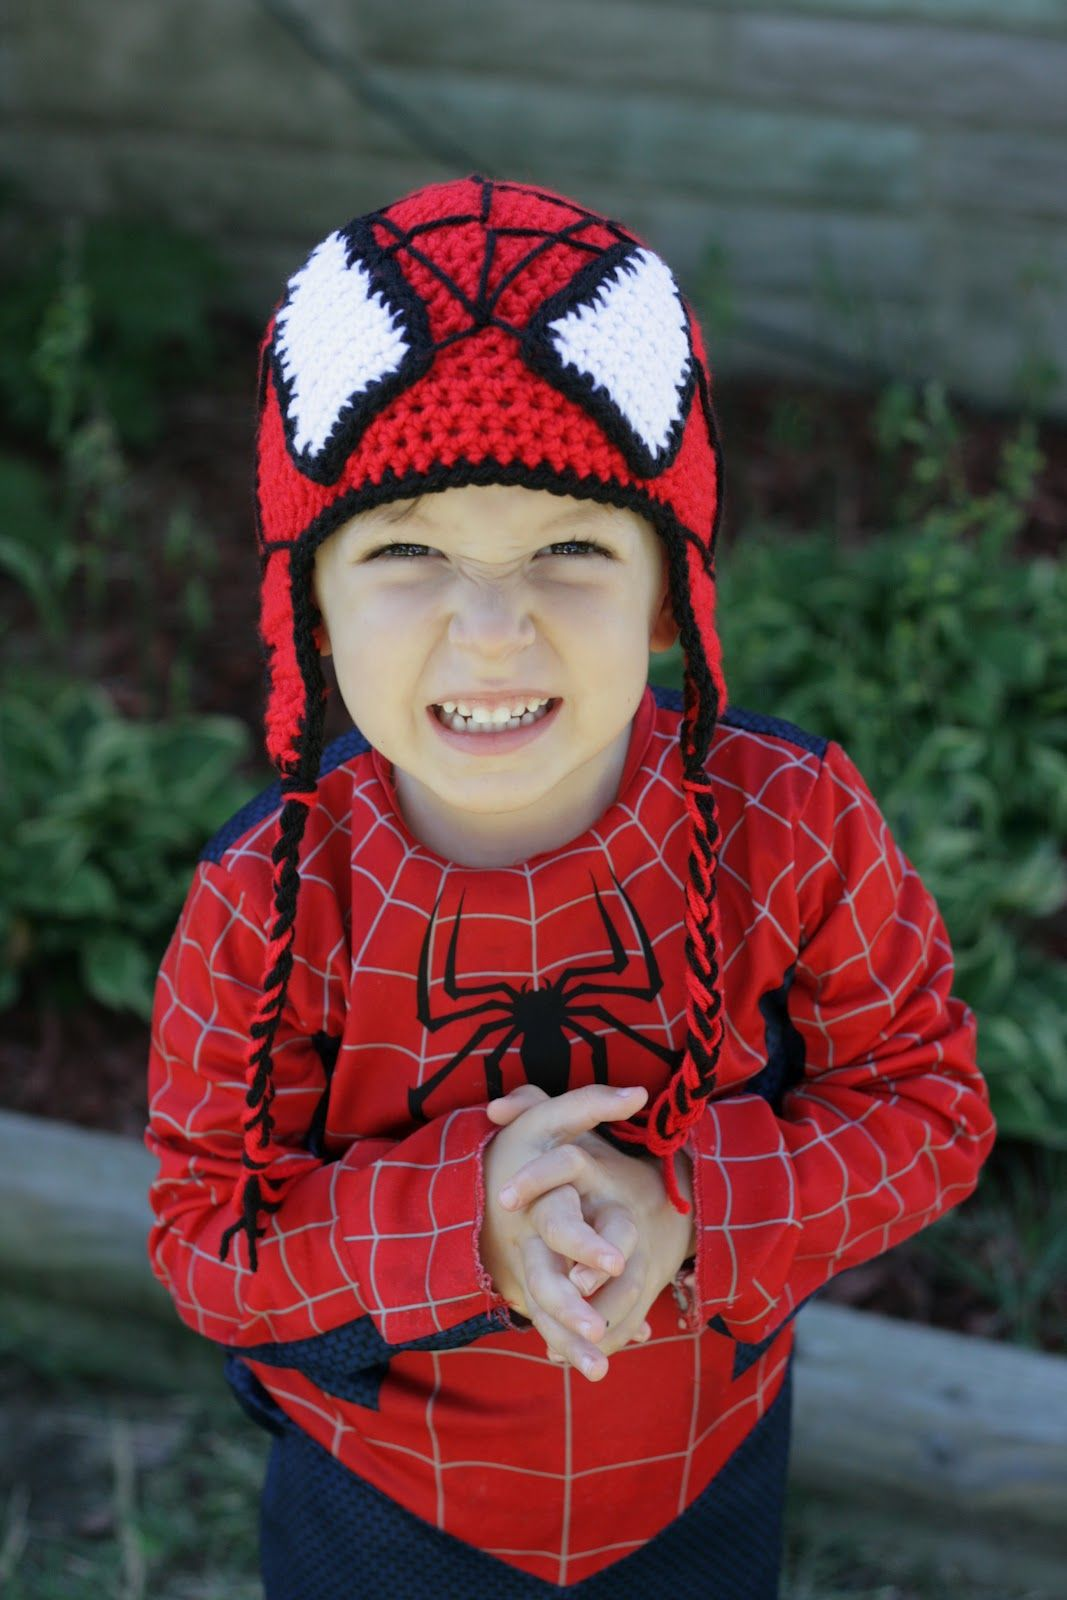 Spider man crochet hat pattern free spiderman hat zoe the spider man crochet hat pattern free spiderman hat zoe the giraffe hat toddler warm bankloansurffo Choice Image